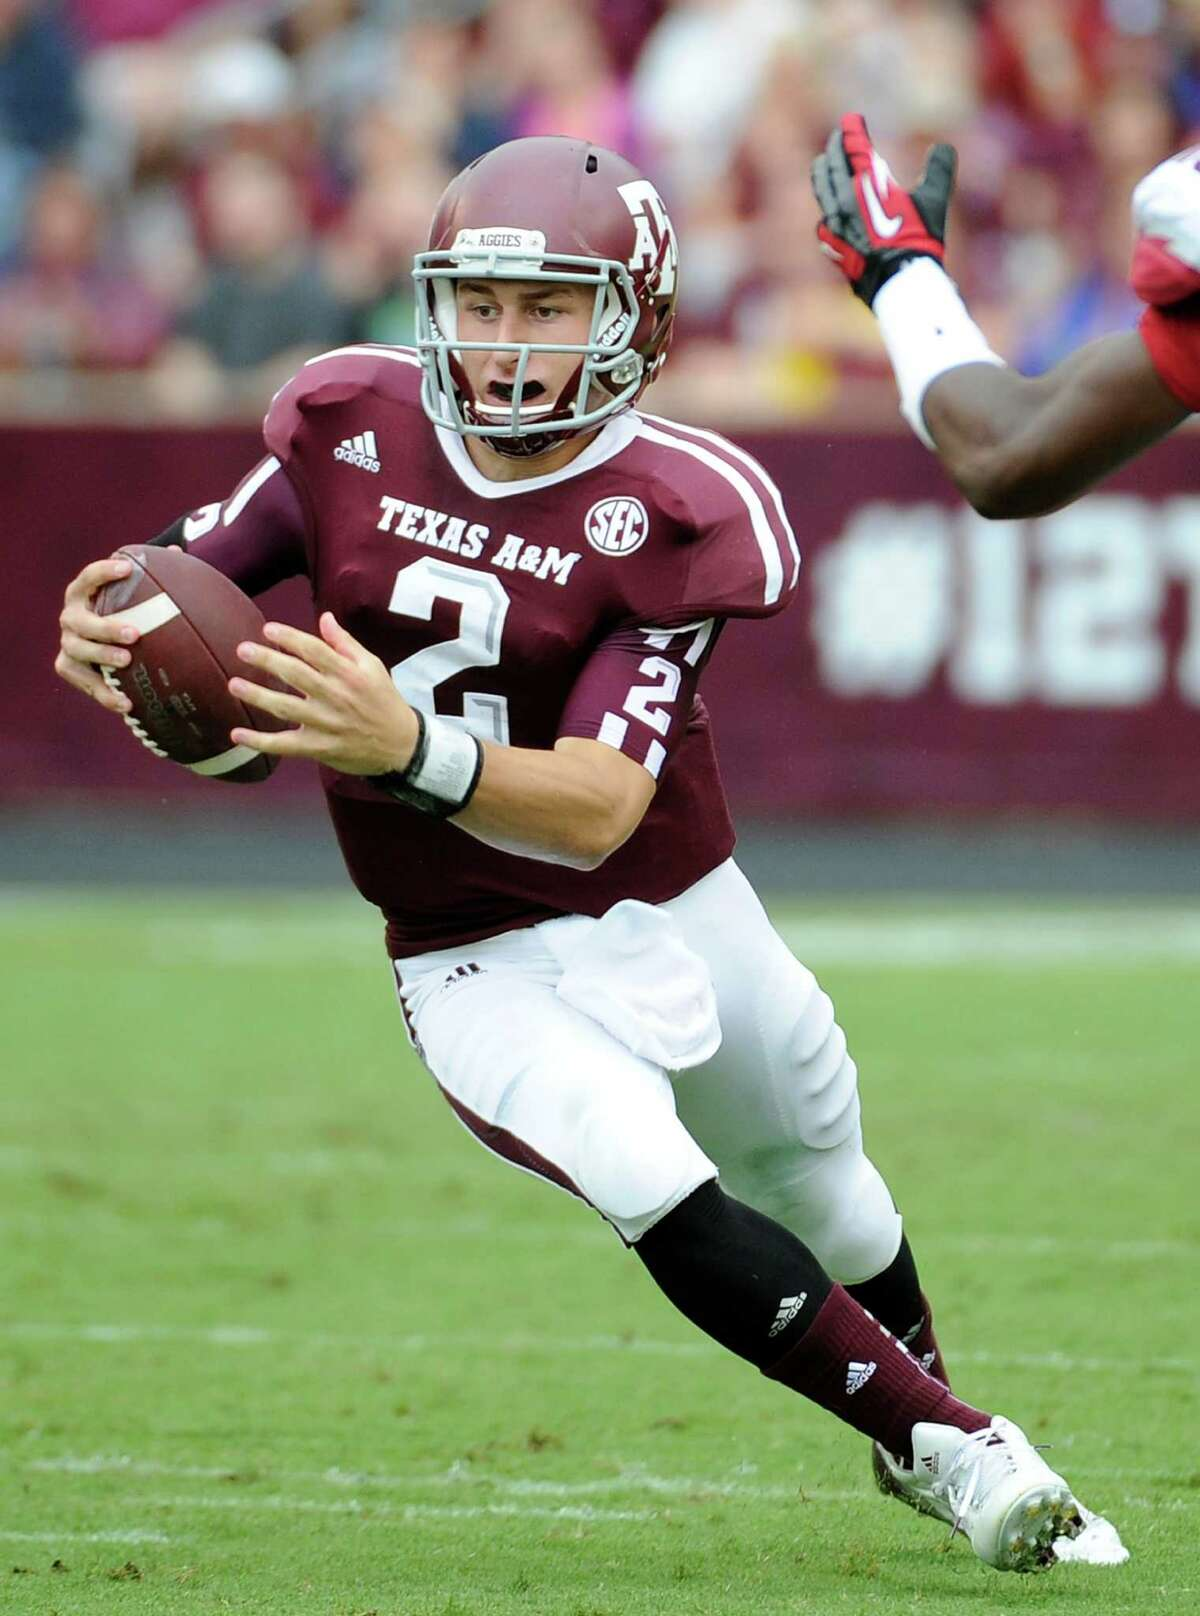 A&M's Johnny Manziel broke the SEC record for total yards last week. He had 557, surpassing the 540 of Ole Miss's Archie Manning (1969) and LSU's Rohan Davey (2001).